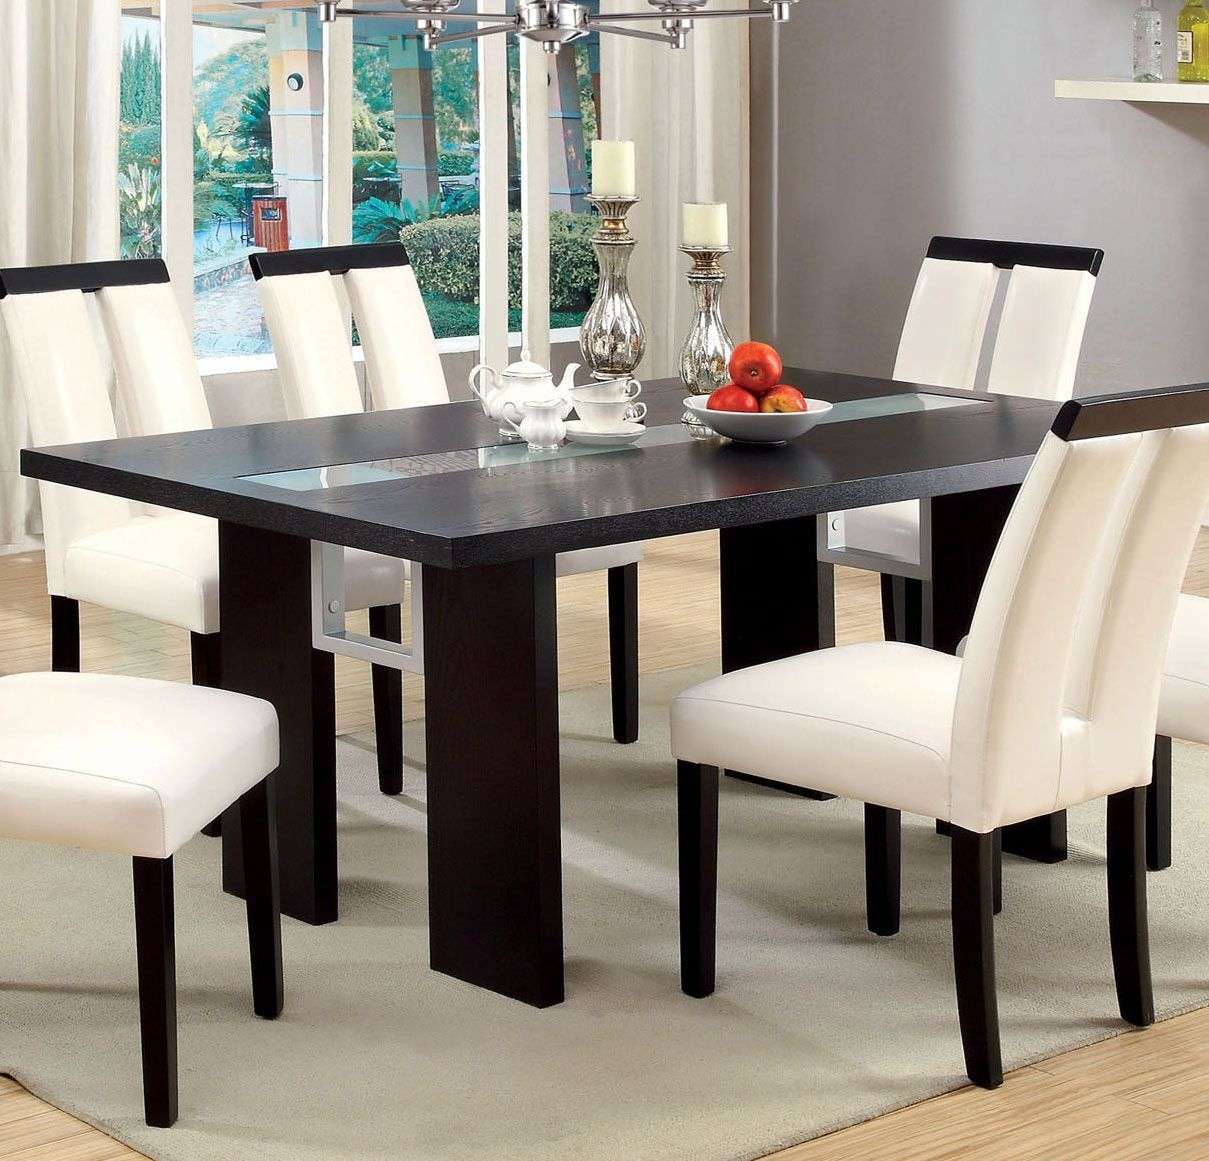 Contemporary Glass Insert Dining Table Black By Casagear Home Glass Dinning Table Dining Table Dining Table Black